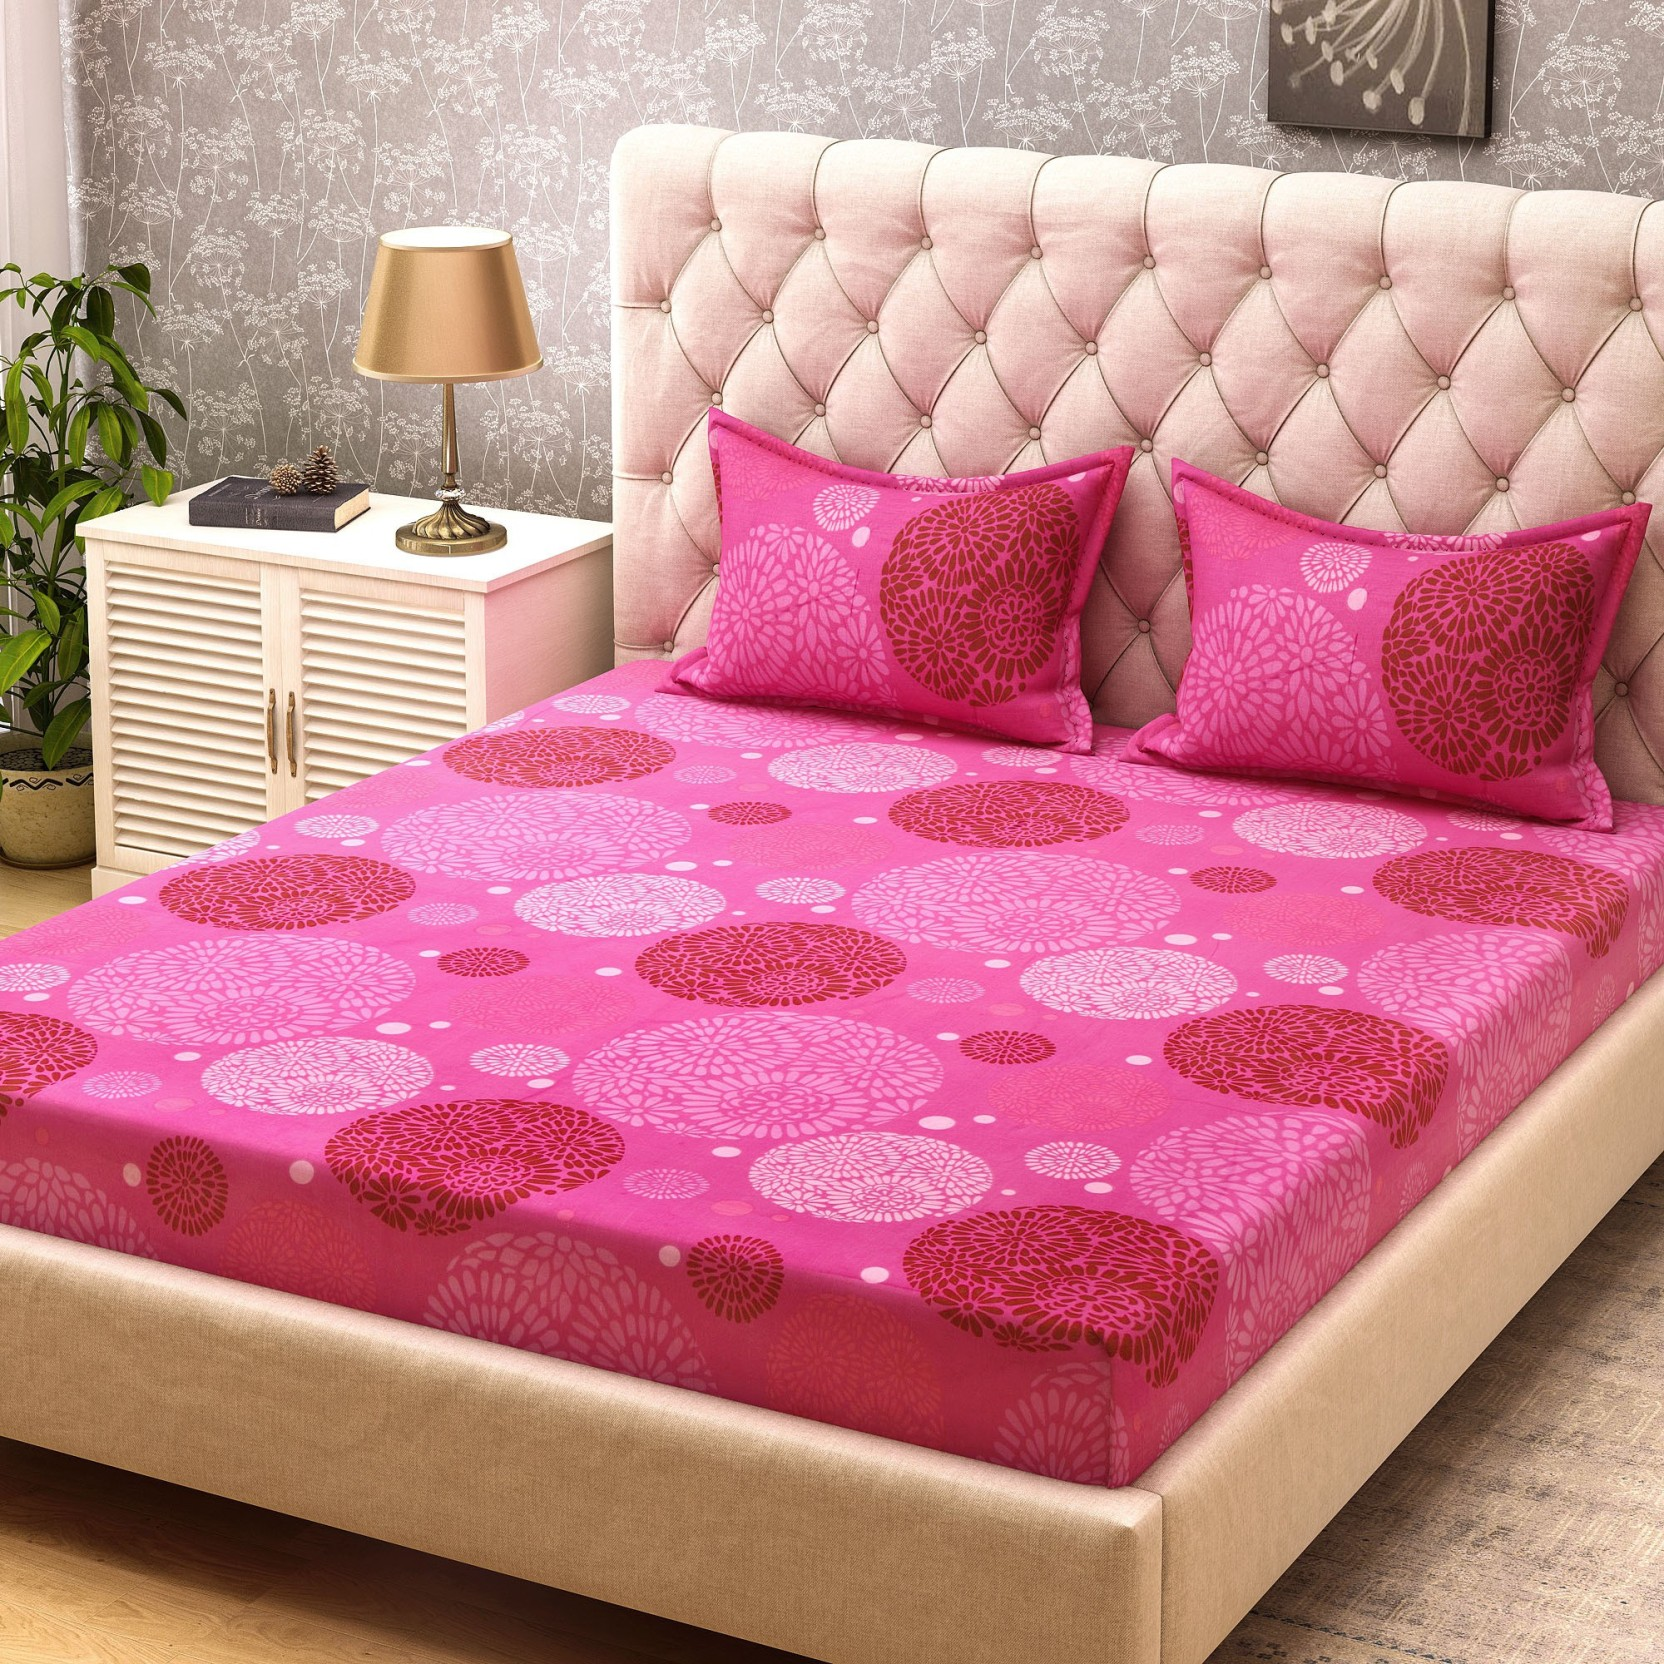 Bombay Dyeing Cotton Printed Double Bedsheet. ON OFFER